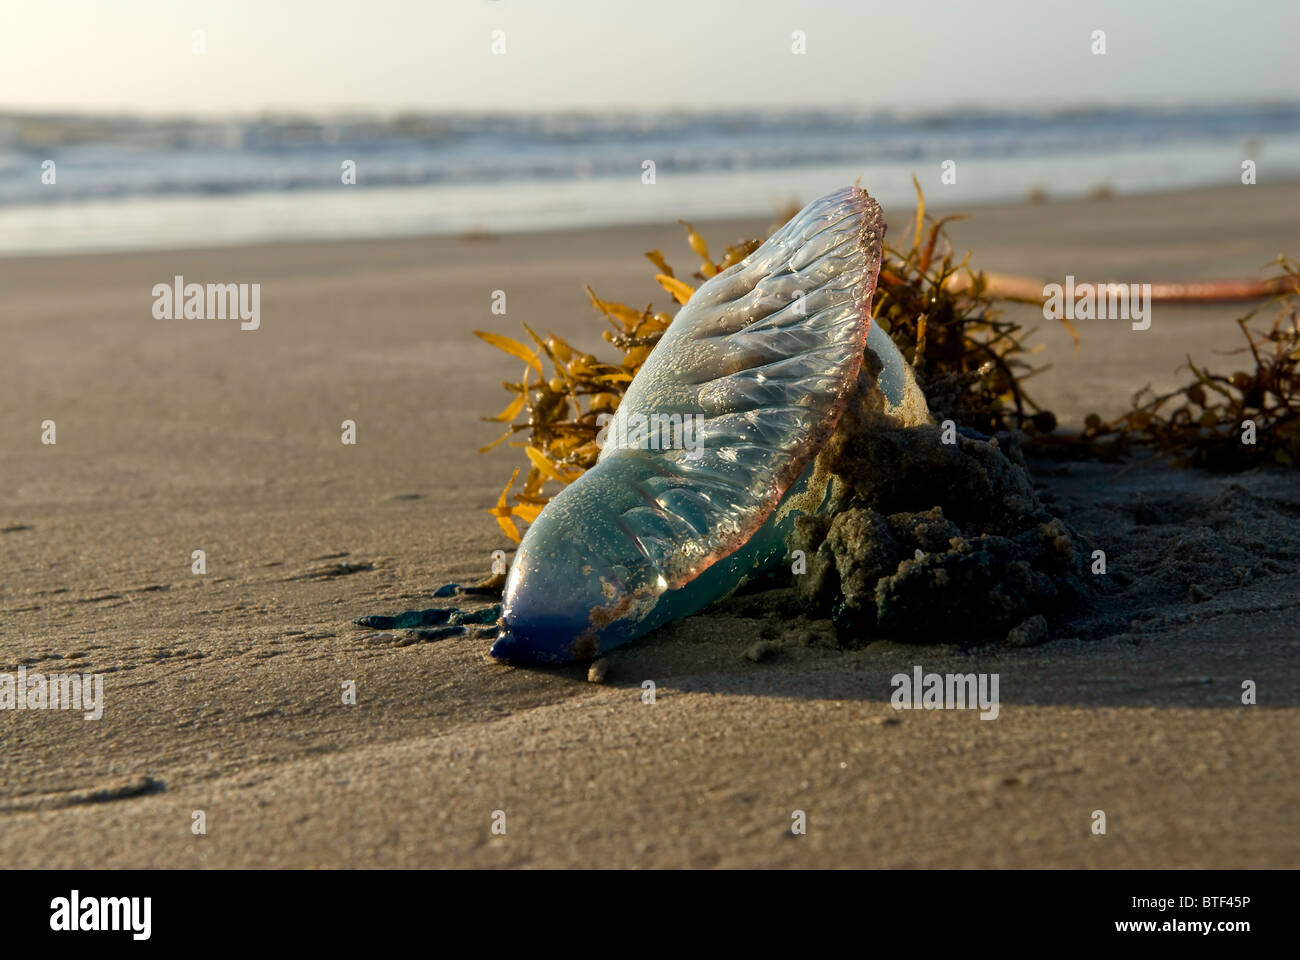 A Man-o-War washed up on the ocean beach in a clump of kelp. Stock Photo